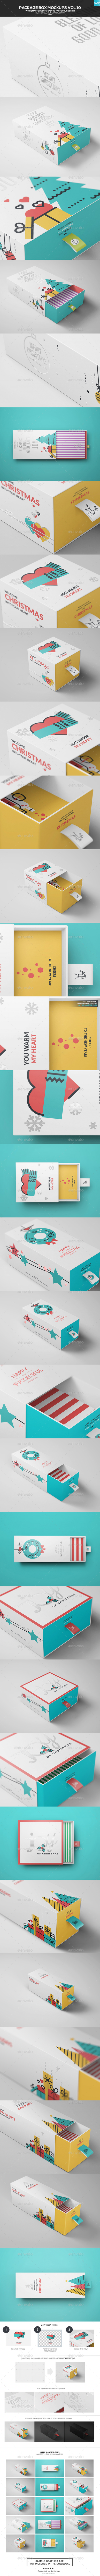 Package Box Mocjups #design Download: http://graphicriver.net/item/package-box-mockups-vol10/13957588?ref=ksioks